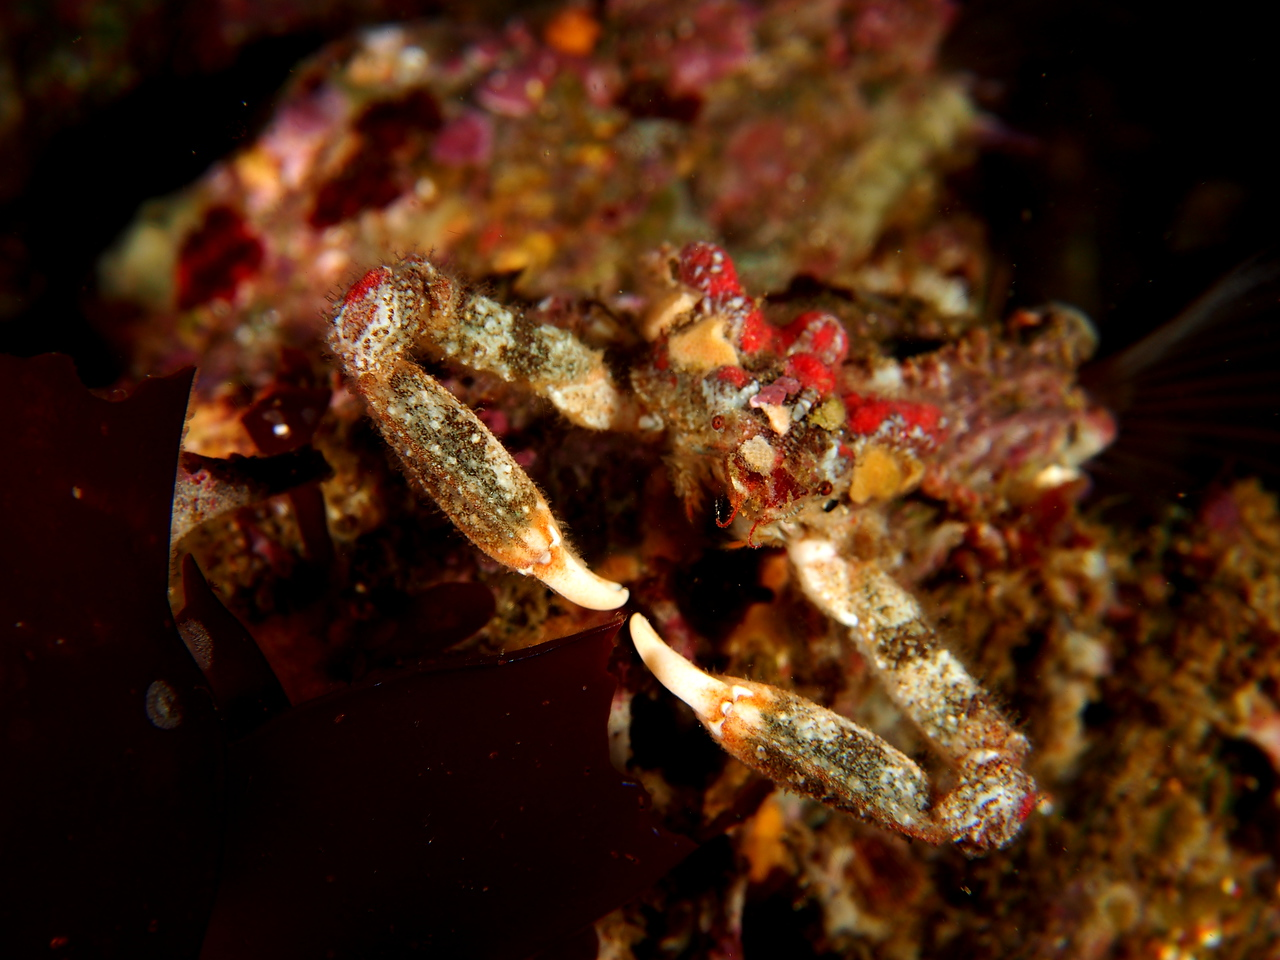 Sharp-nosed Crab